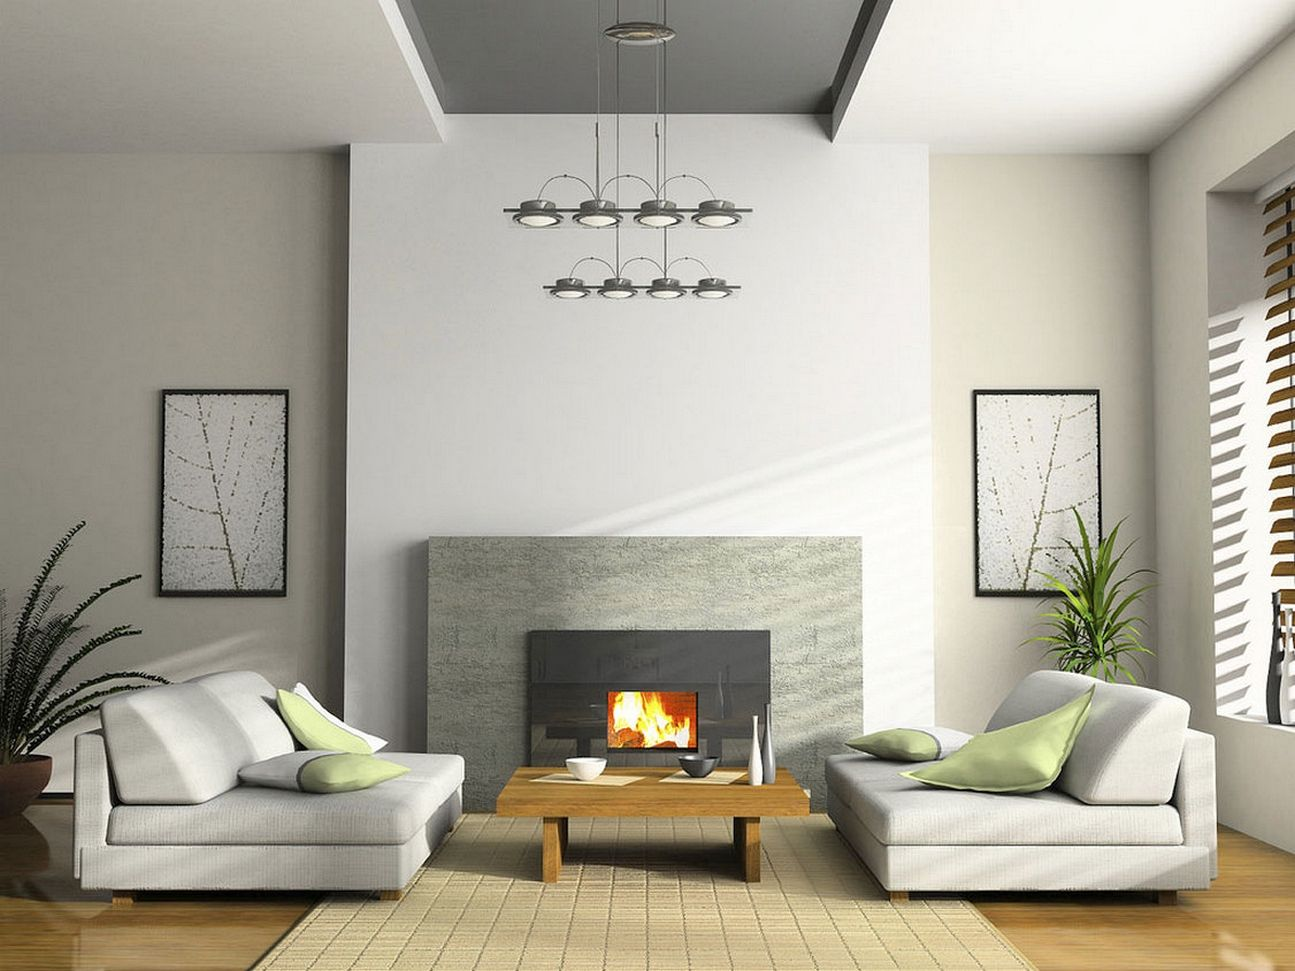 Nice 2017 Color Trends And Inspiration For Interior Design: Modern And Minimalist Ideas